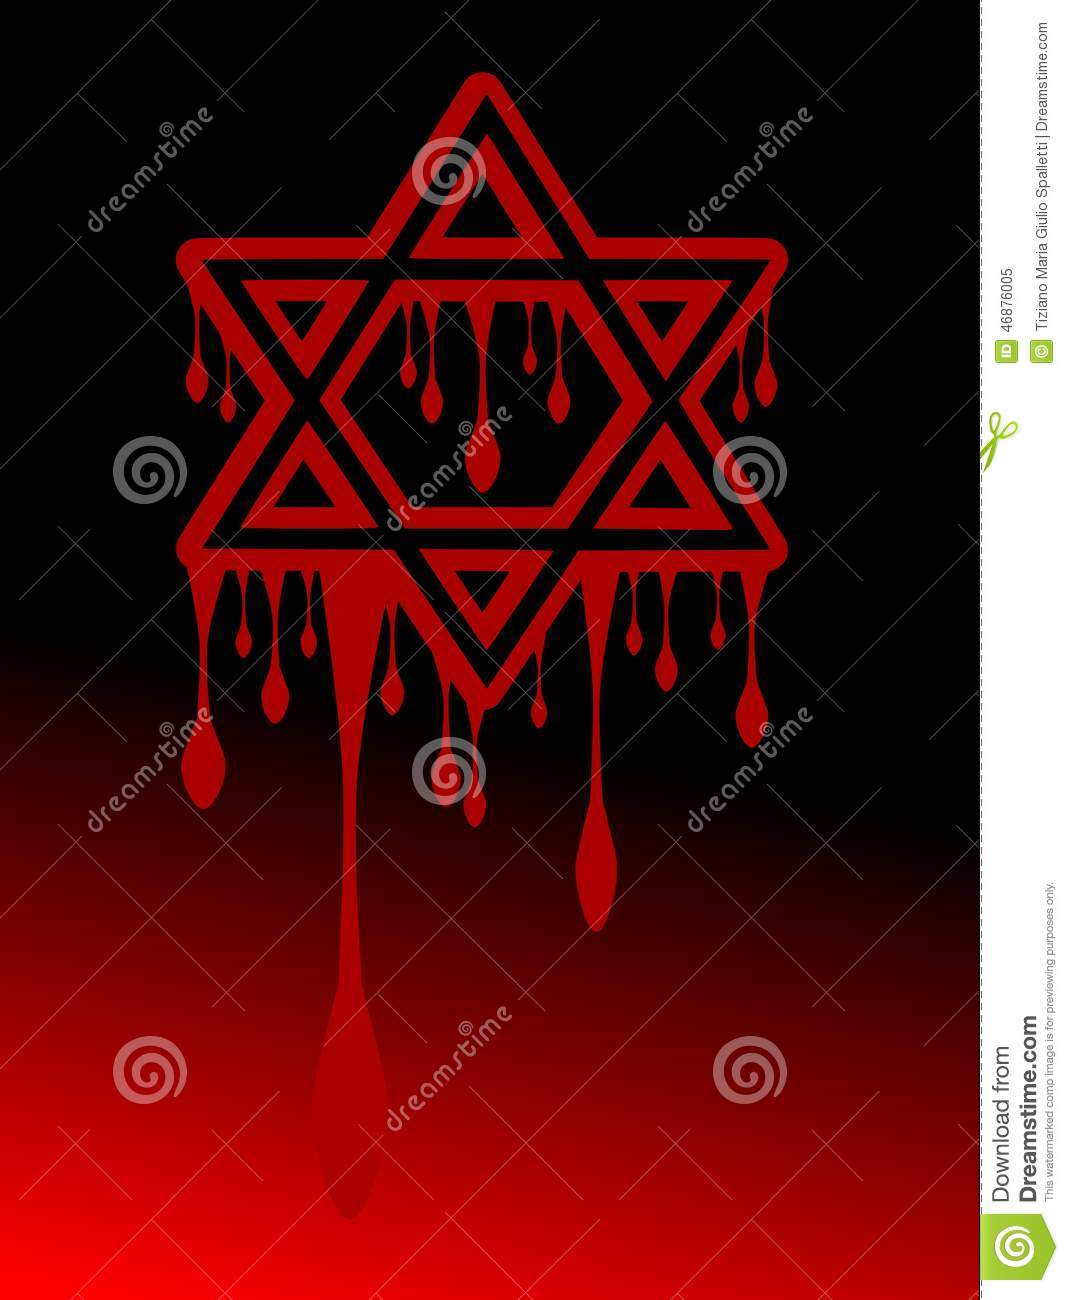 Bloody star of king david on red and black background illustration bloody star of king david on red and black background biocorpaavc Choice Image